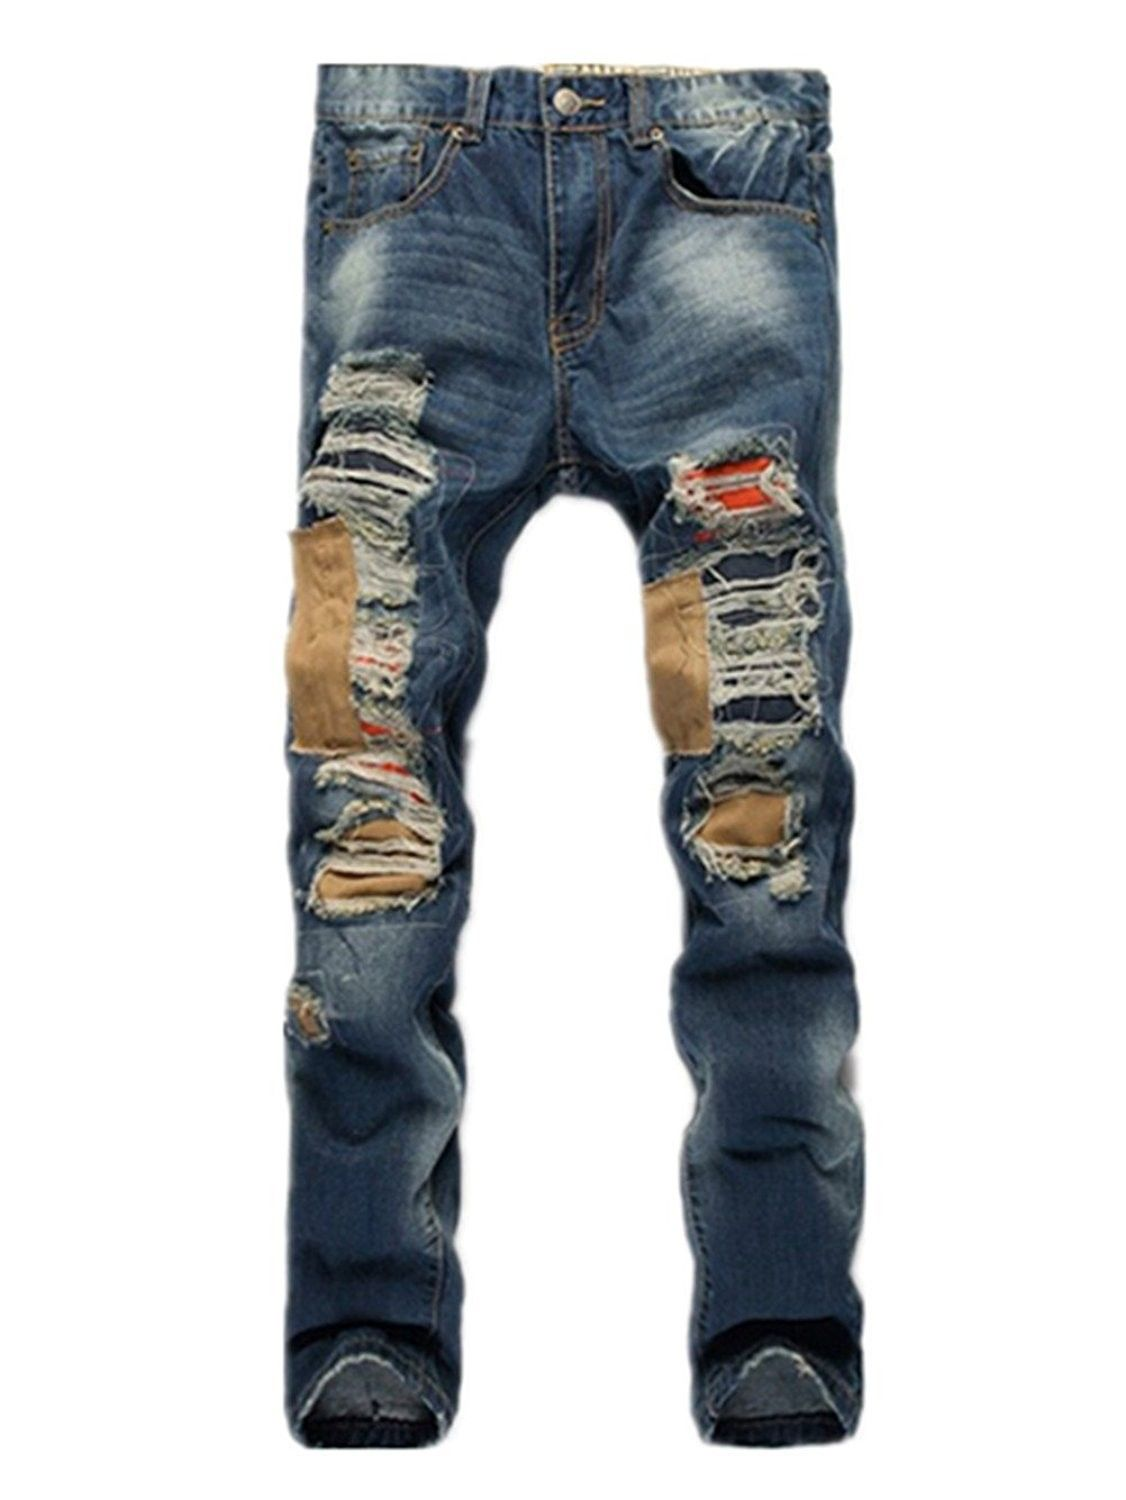 Men s Clothing, Jeans, Men s Ripped Destroyed Washed Distressed Denim Slim  Straight Jeans - 0811 85e2f57a9f1c